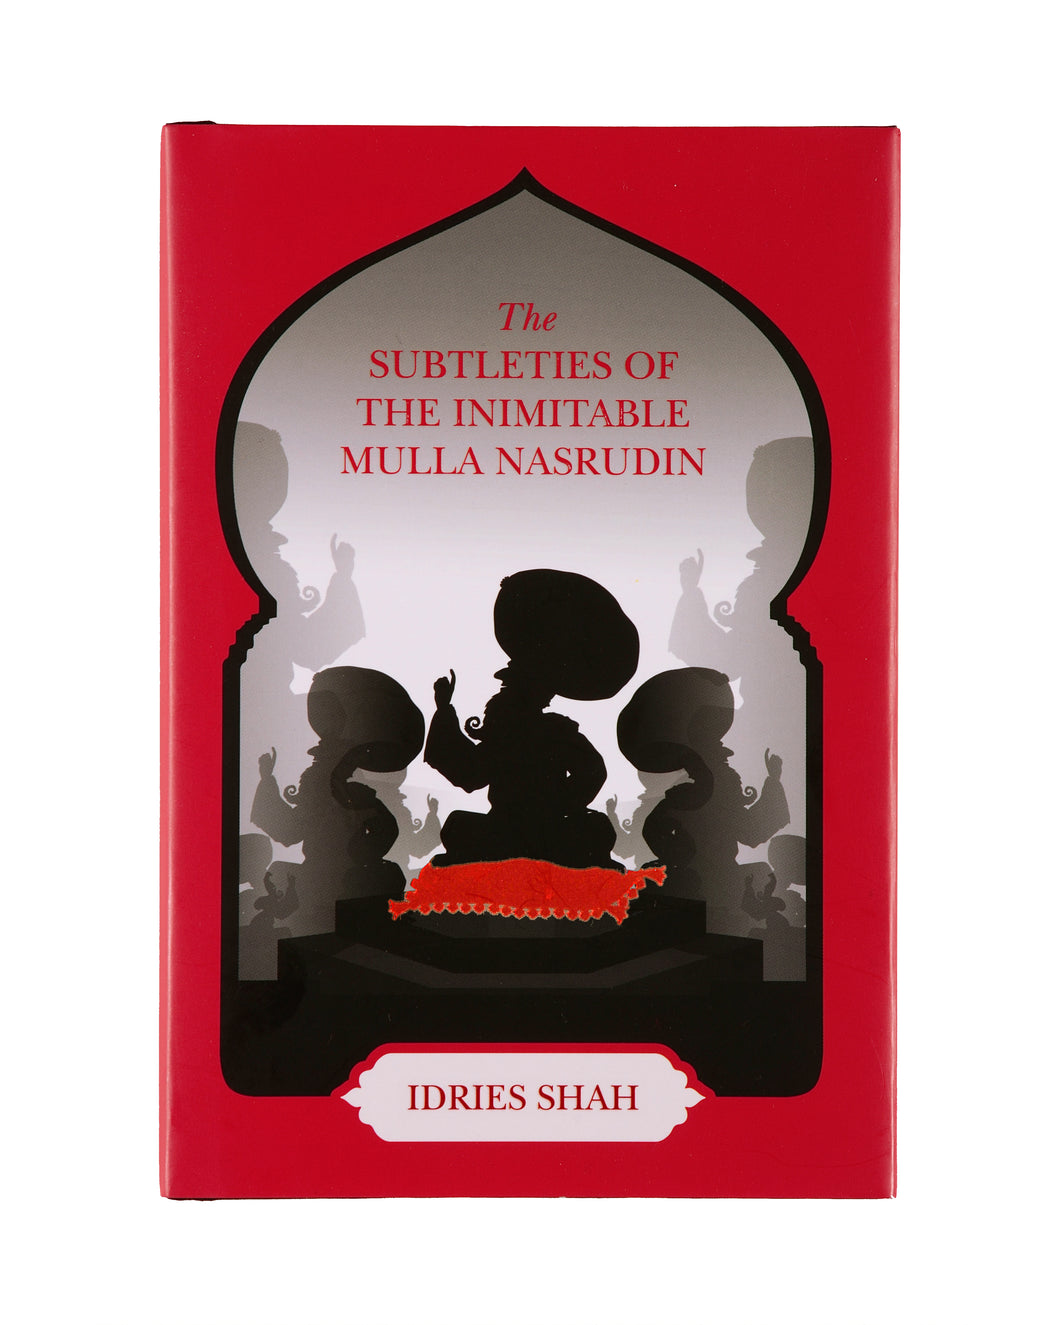 The Subleties of the Inimitable Mulla Nasrudin Limited Edition Hardcover